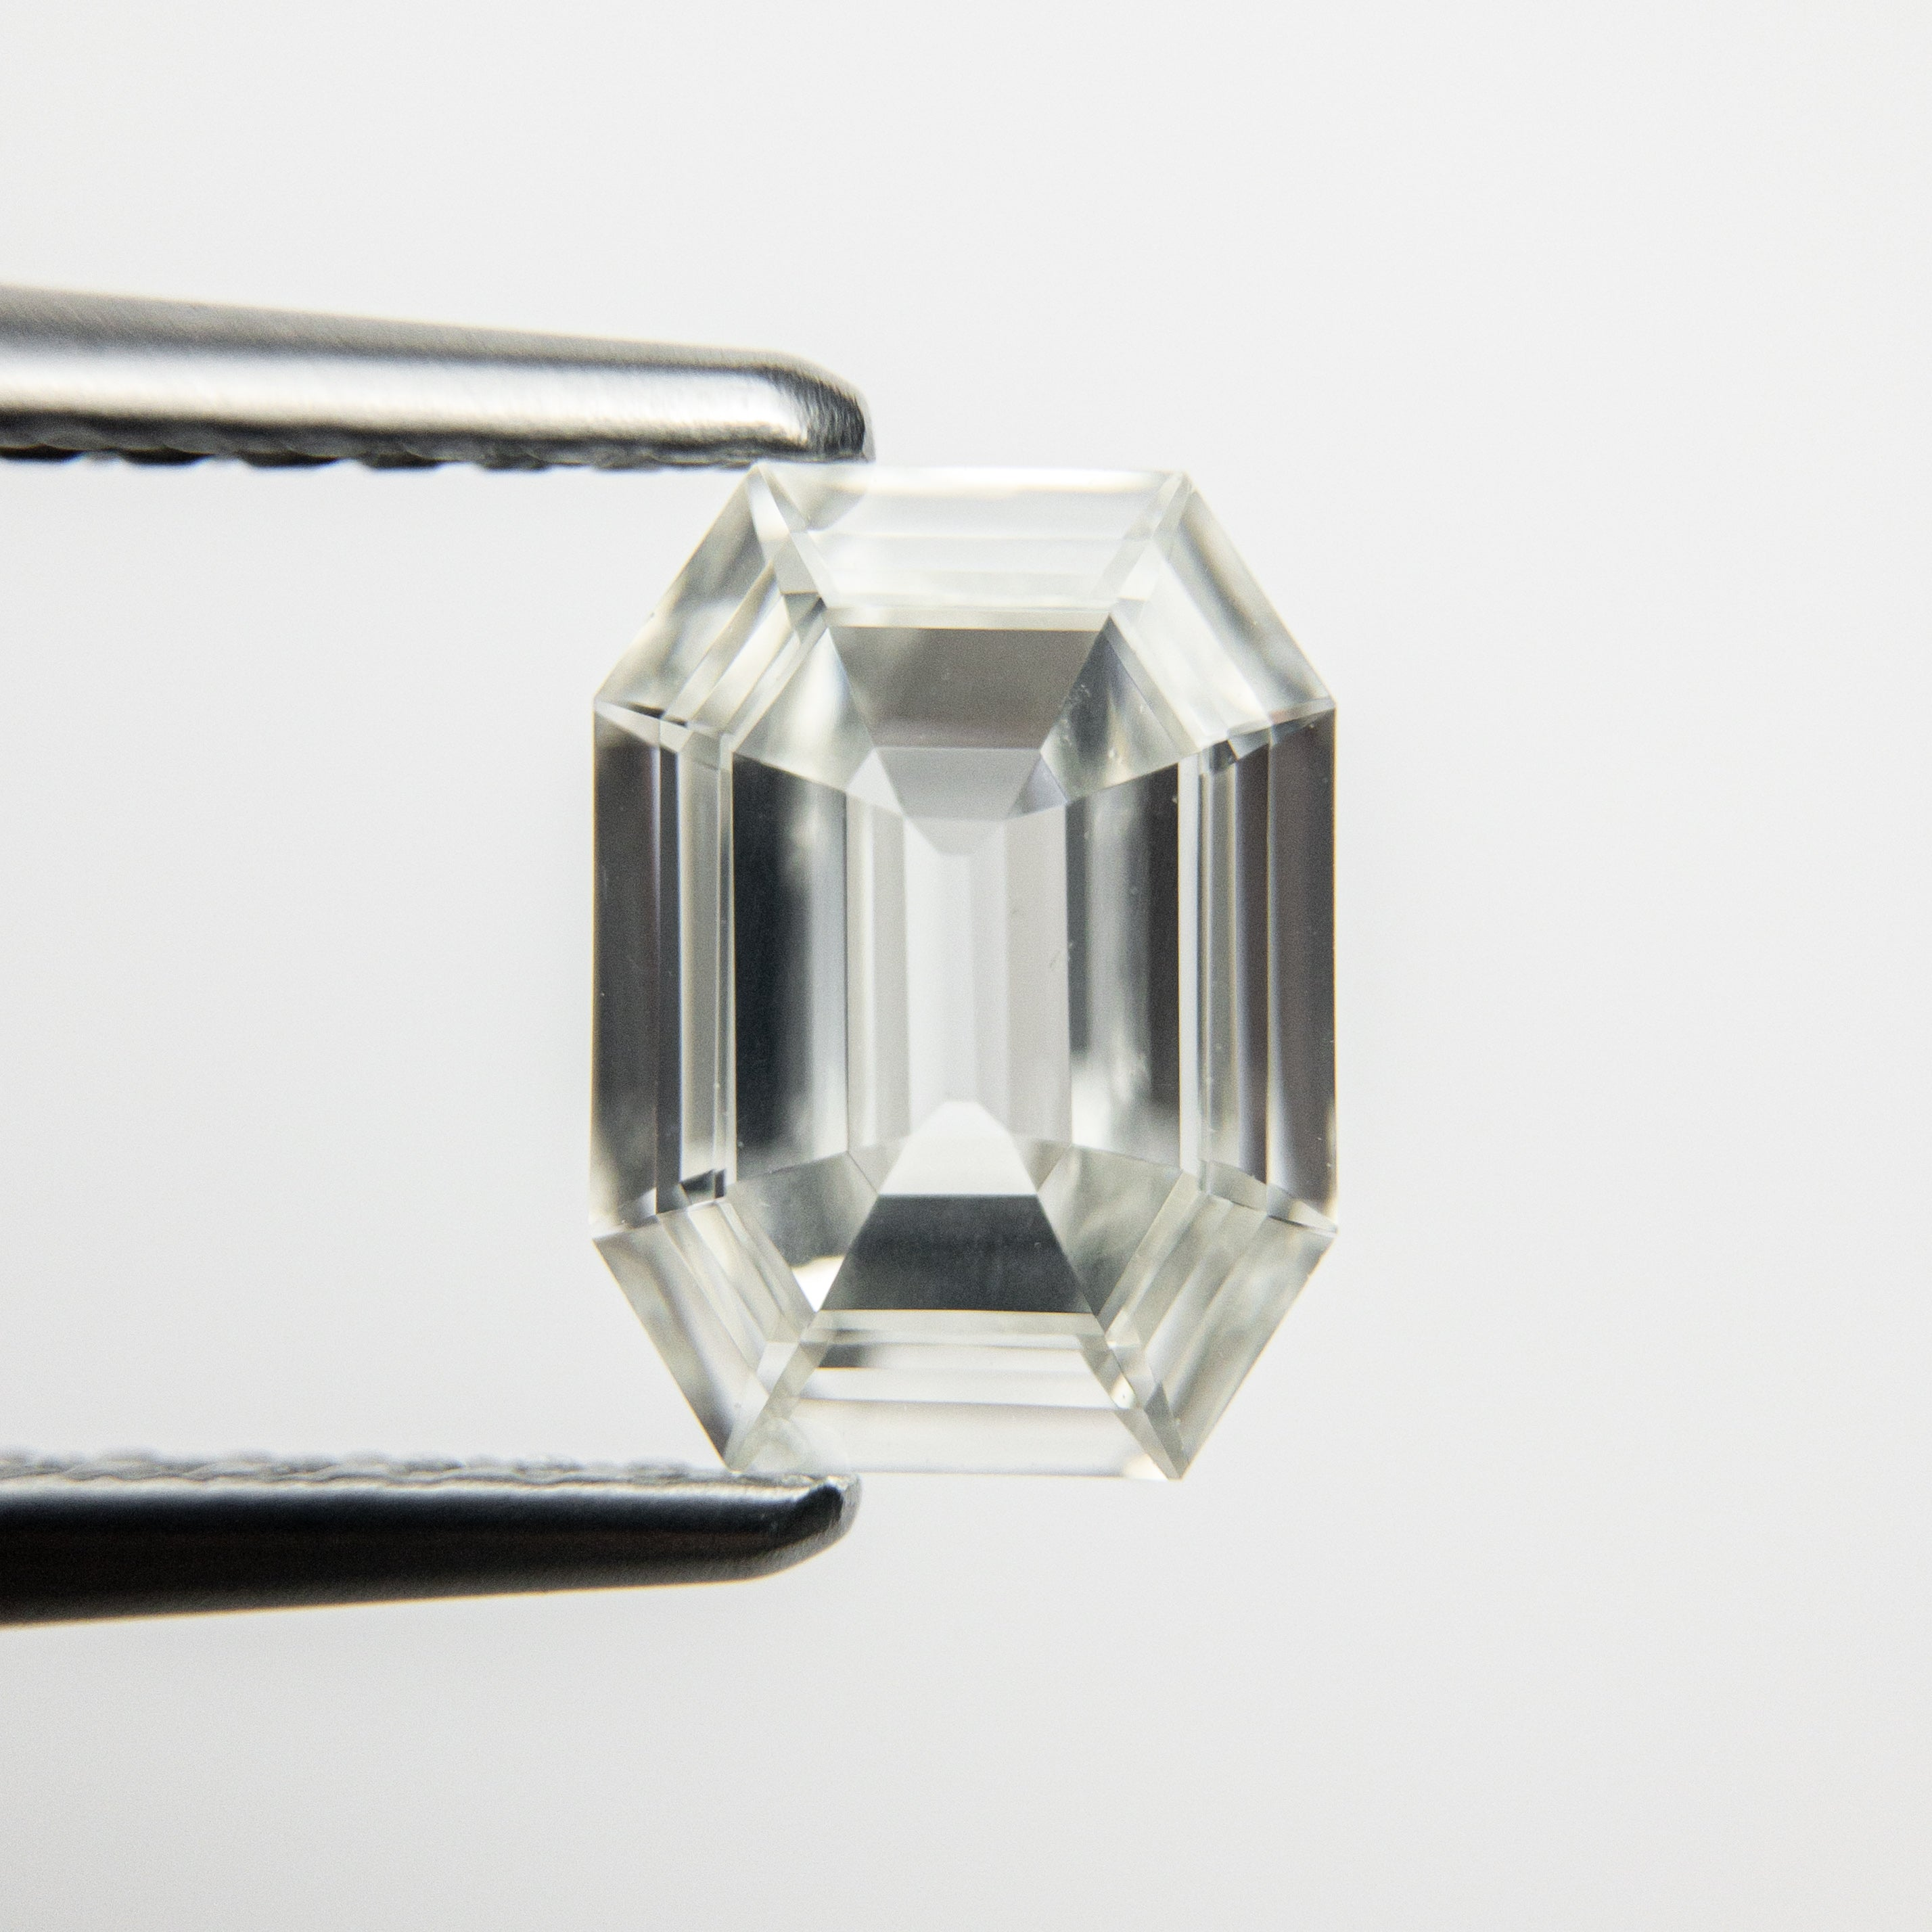 1.01ct GIA Certified VS2 G color natural emerald cut diamond for custom work - inventory code ECWG101 - Midwinter Co. Alternative Bridal Rings and Modern Fine Jewelry